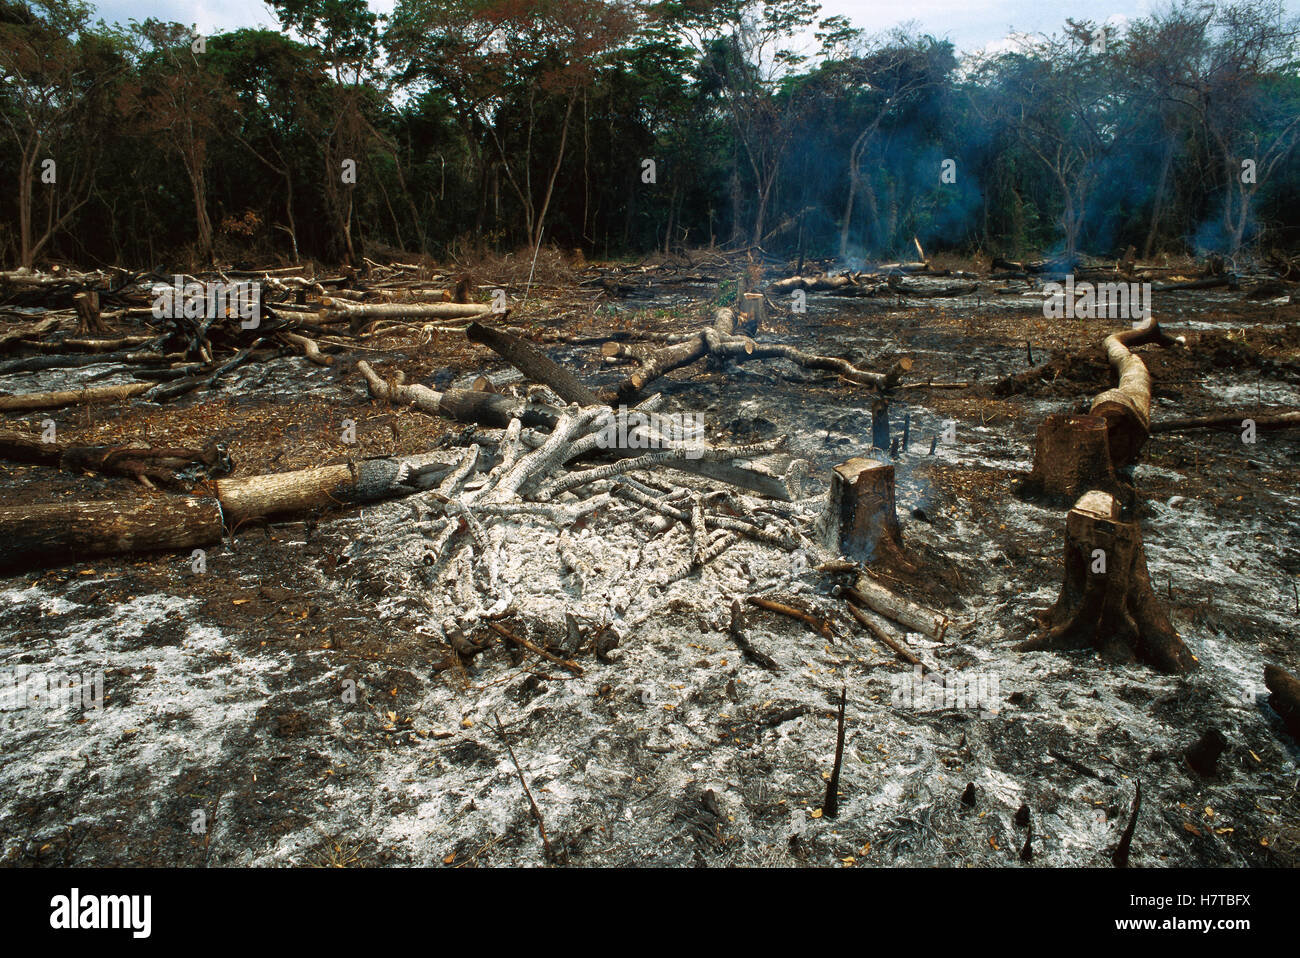 Slash and burn rainforest destruction for agriculture Belize